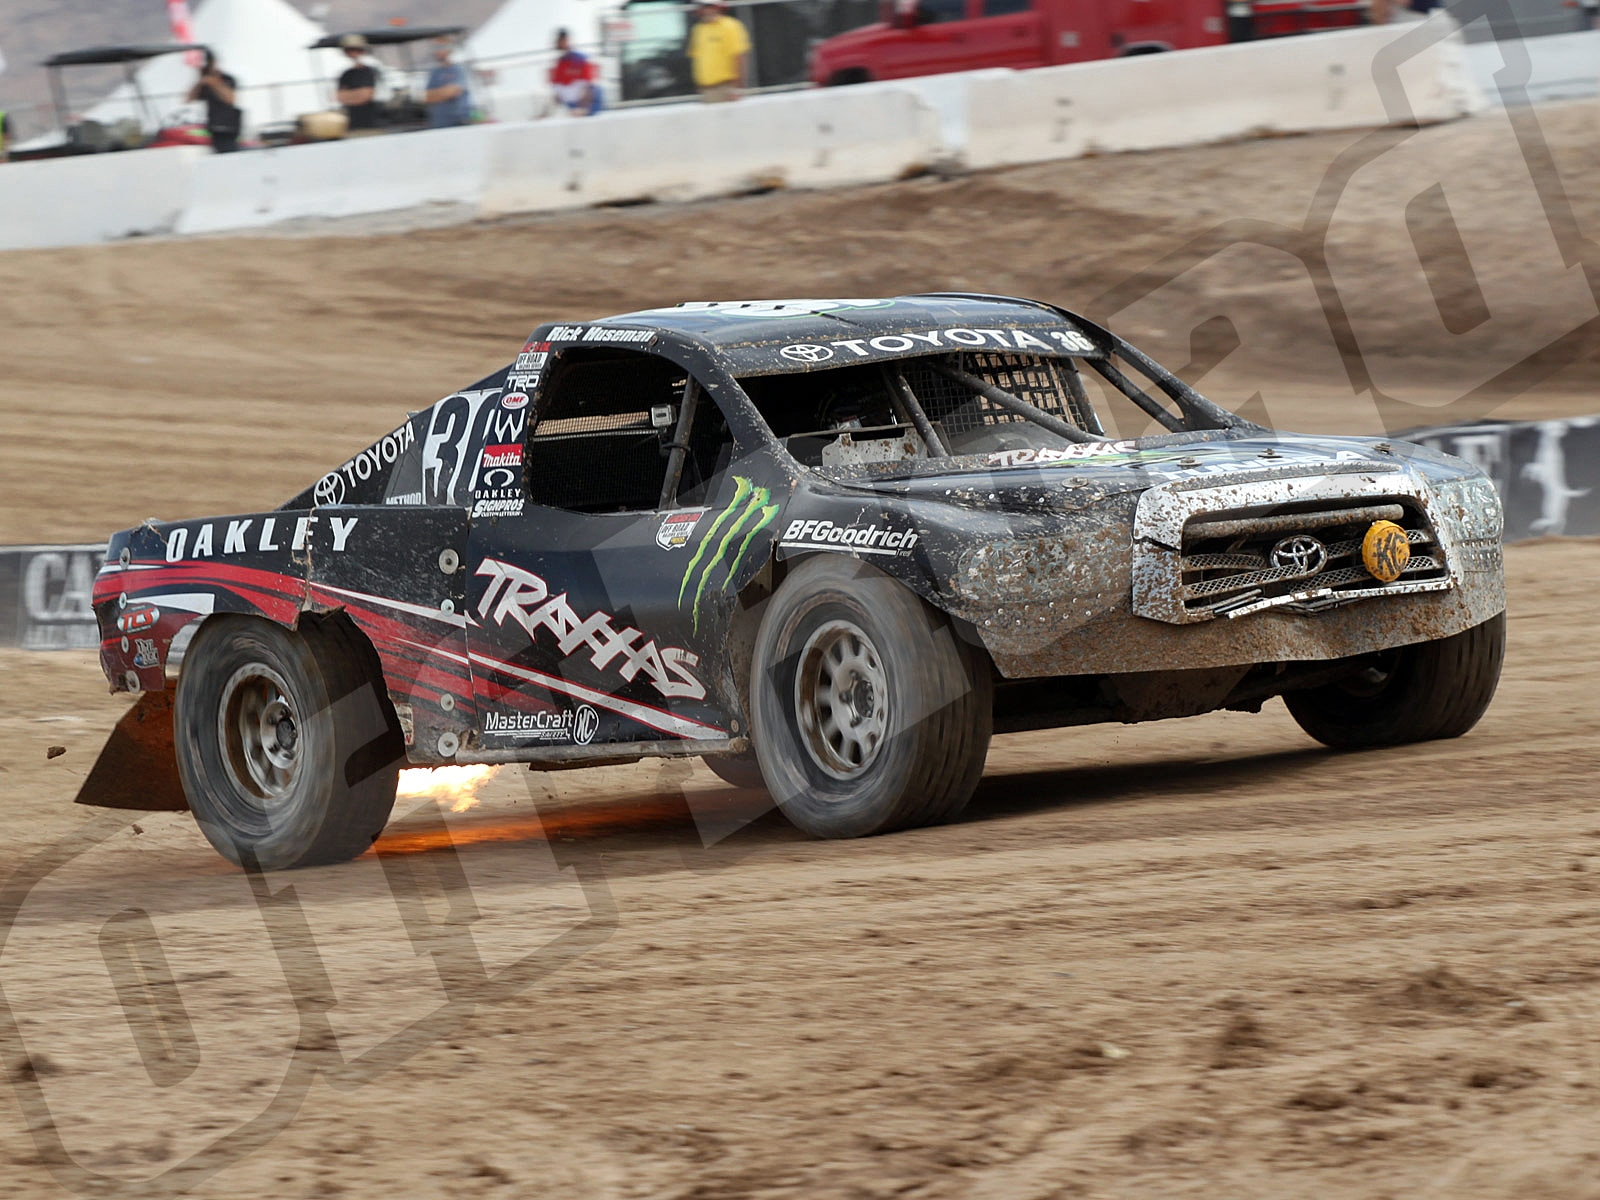 111010or 8651+lucas oil off road racing series+pro 4